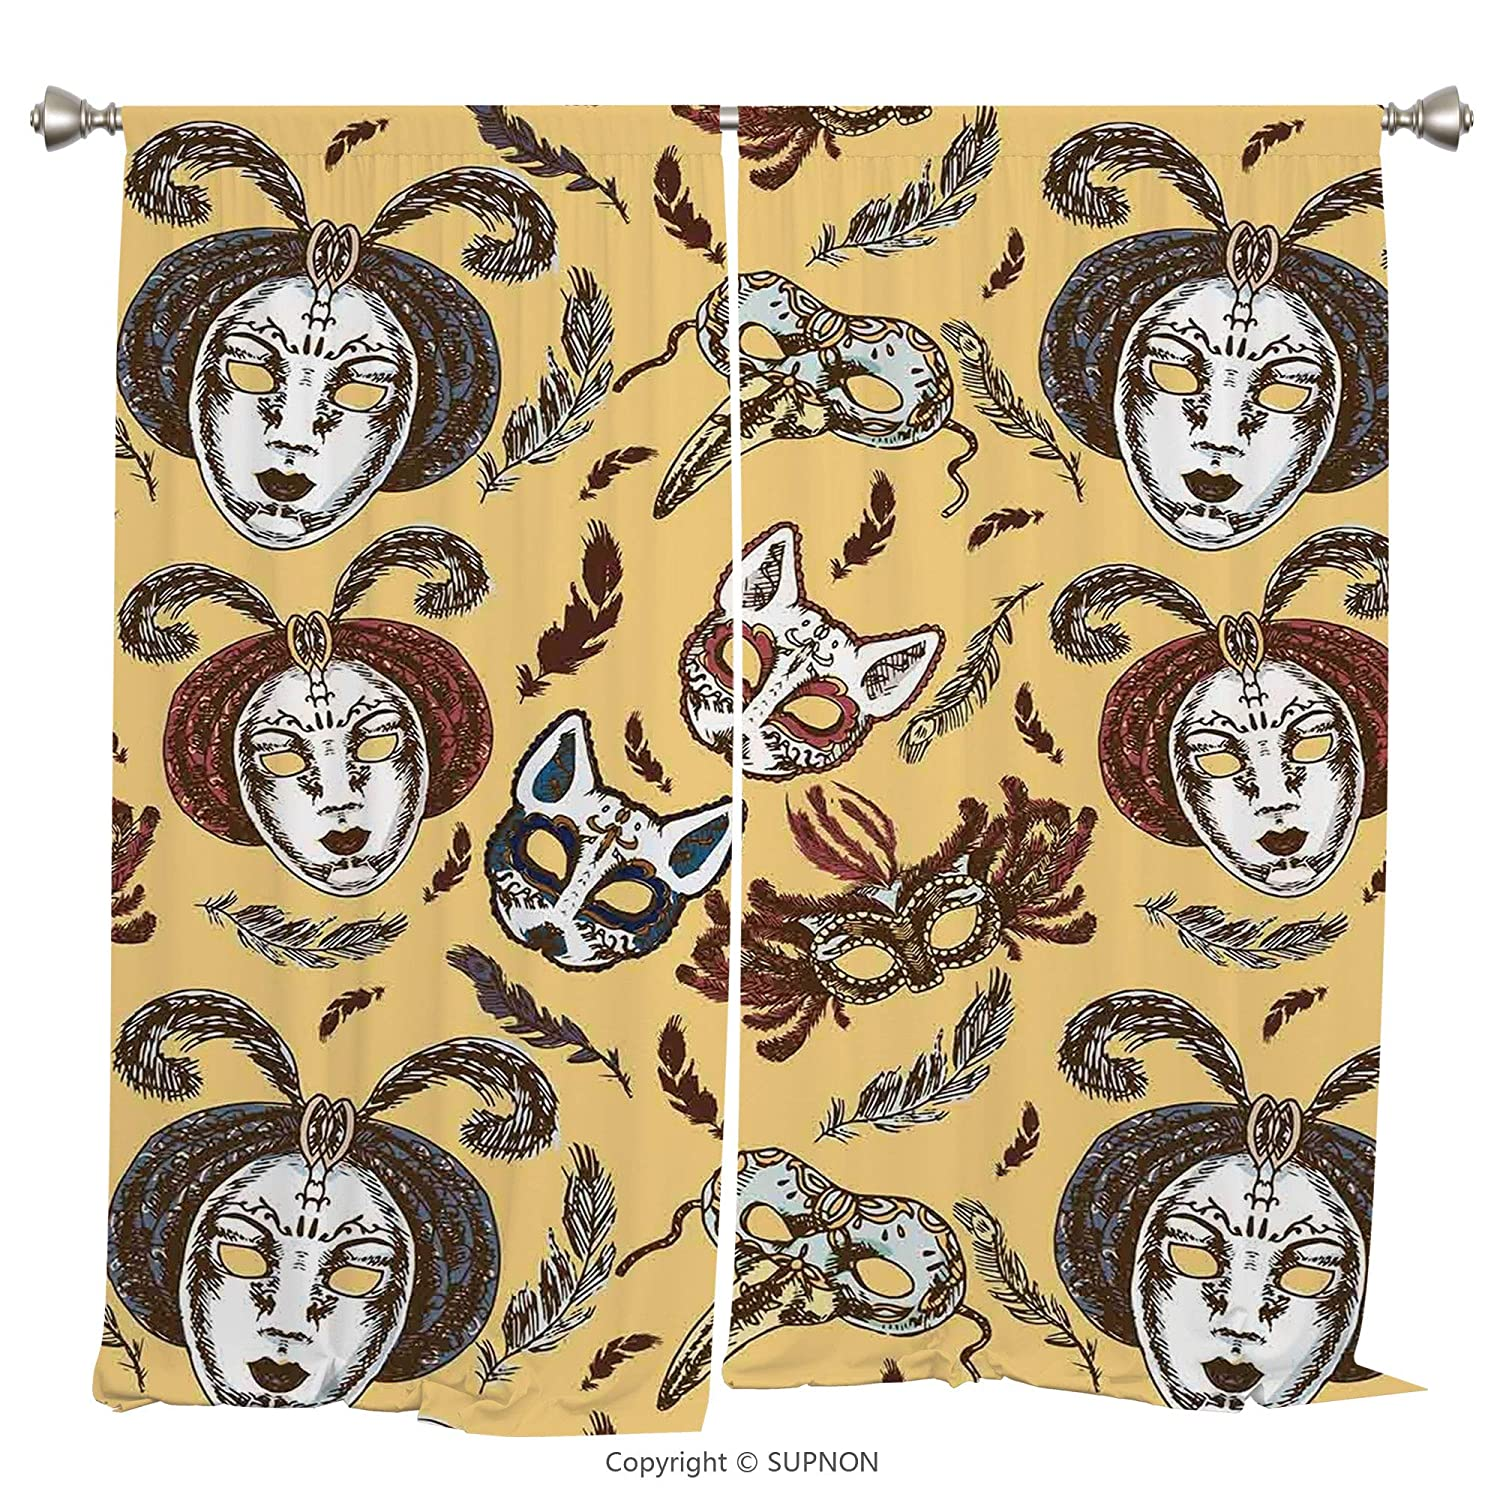 Rod Pocket Curtain Panel Thermal Insulated Blackout Curtains for Bedroom Living Room Dorm Kitchen Cafe/2 Curtain Panels/108 x 72 Inch/Masquerade,Venetian Style Paper Mache Face Mask With Feathers Danc